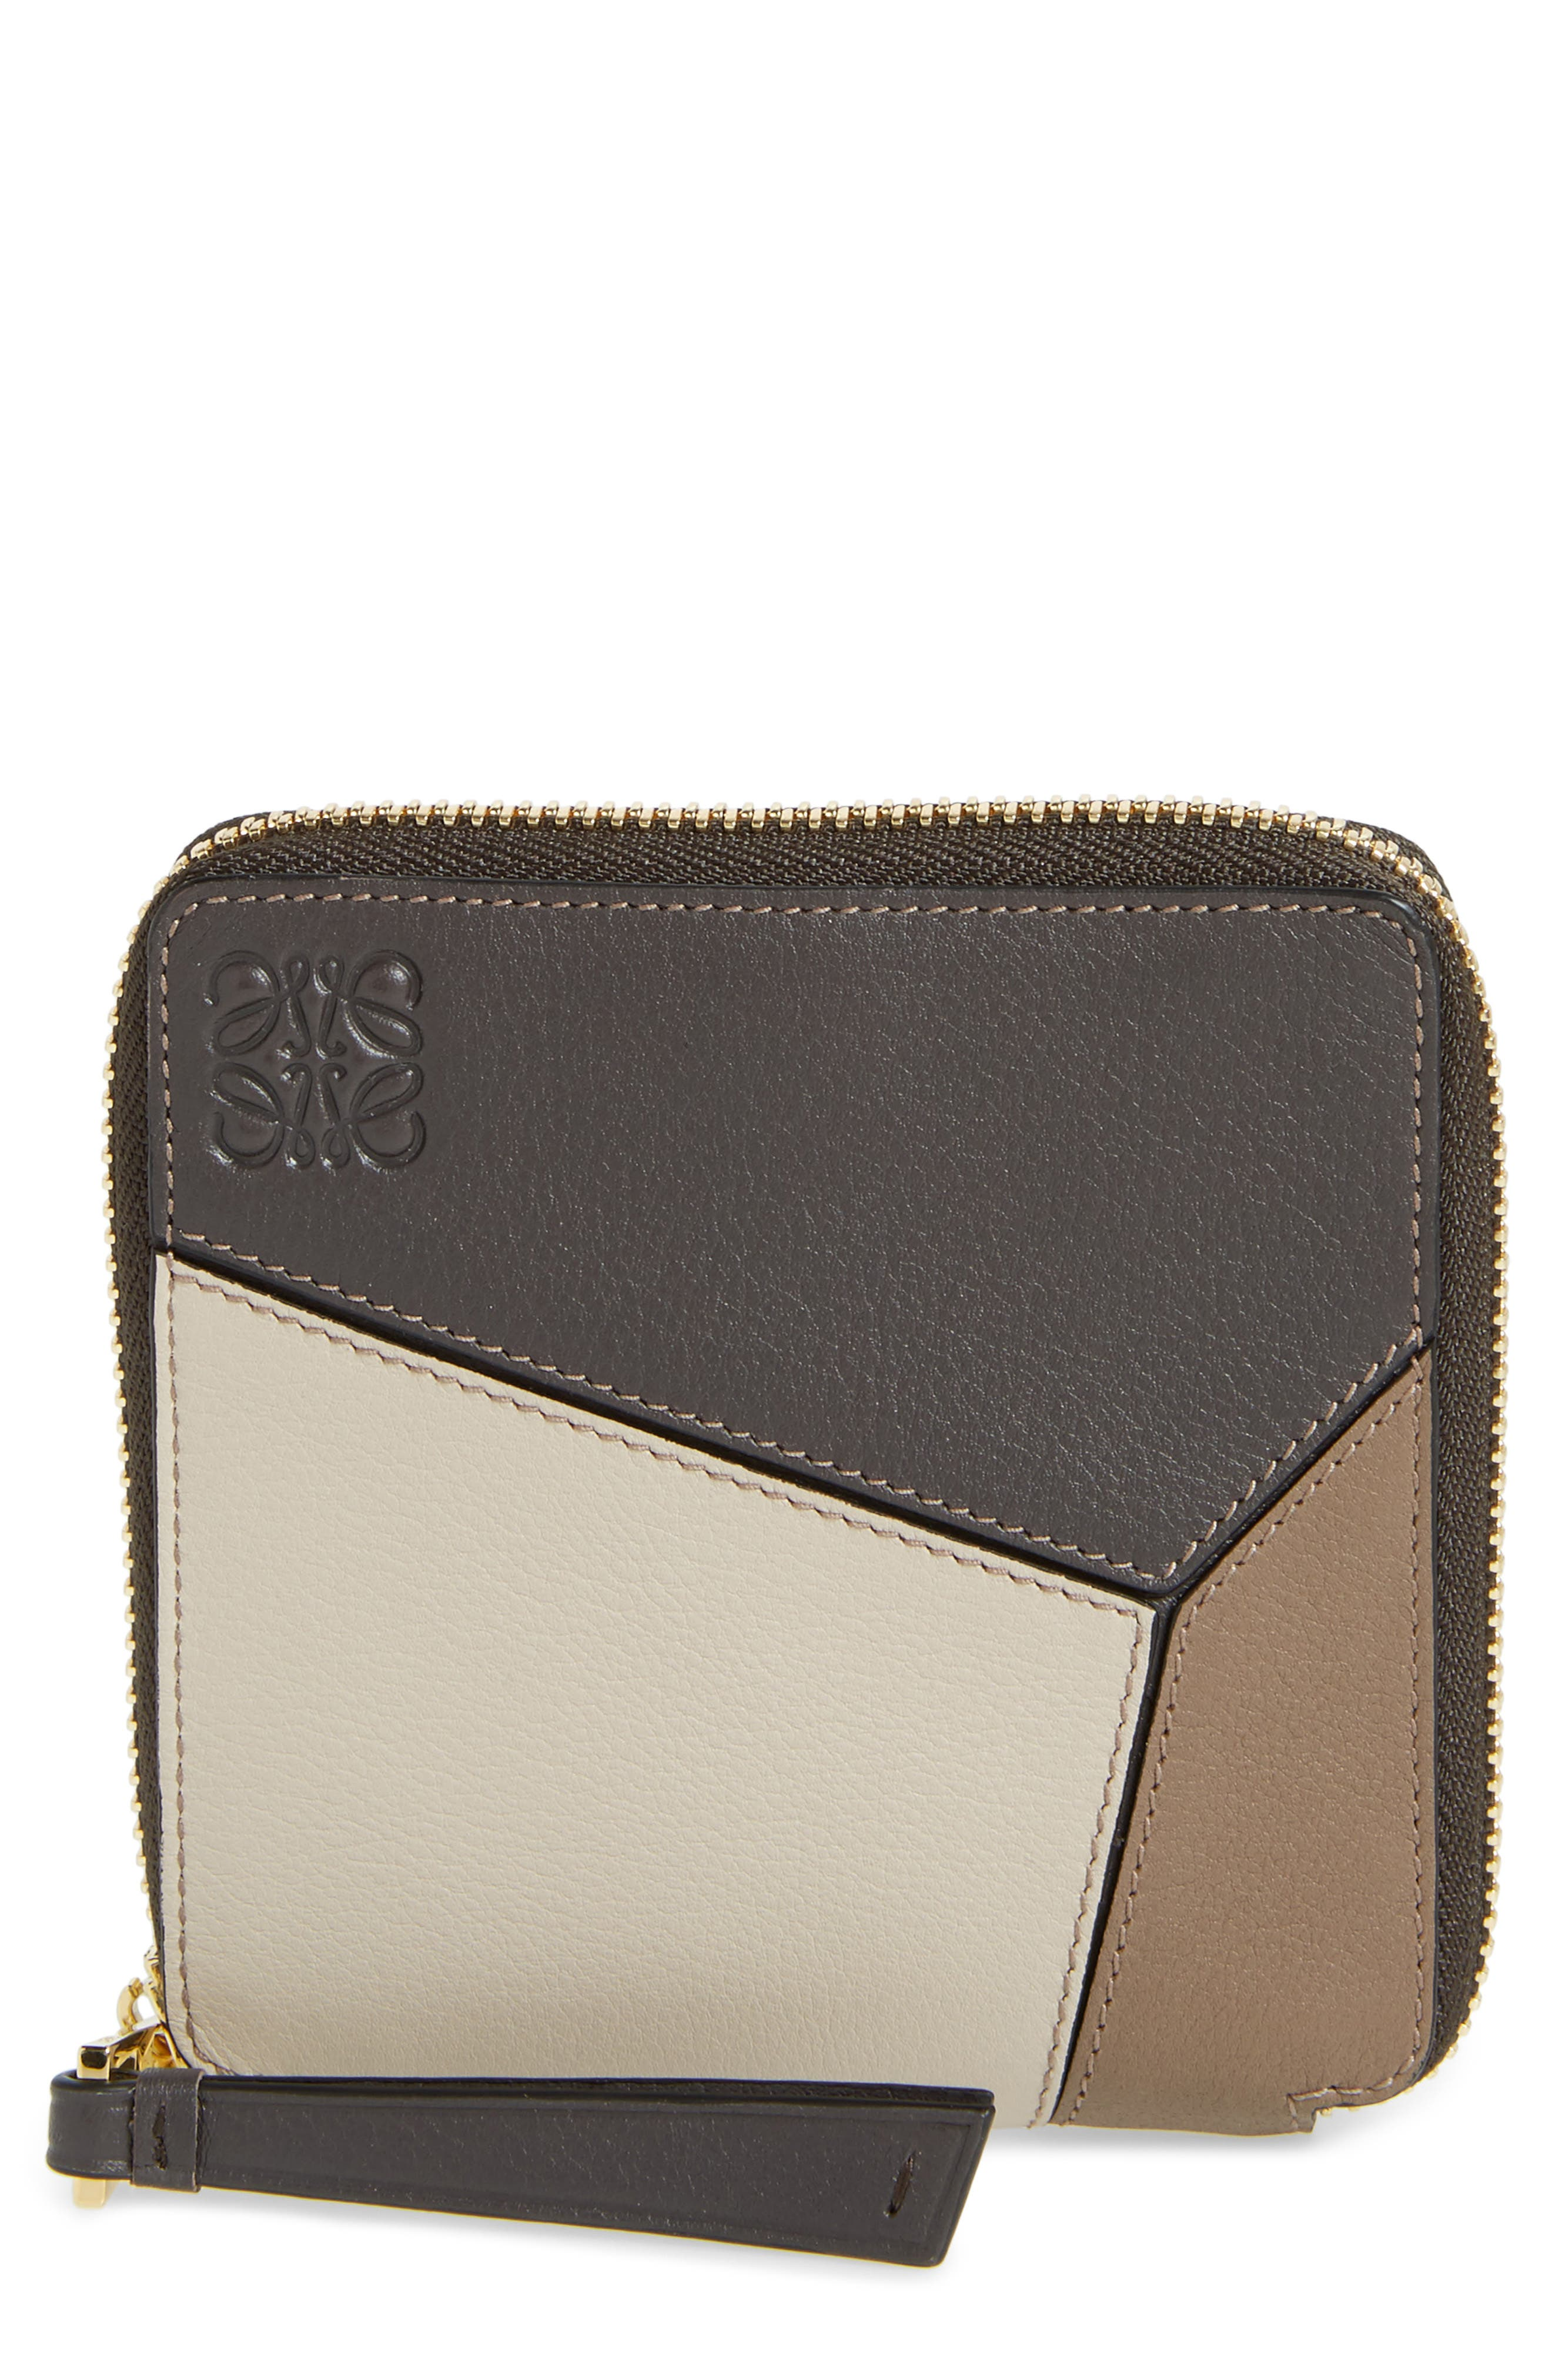 Main Image - Loewe Denim Puzzle Colorblock Leather French Wallet